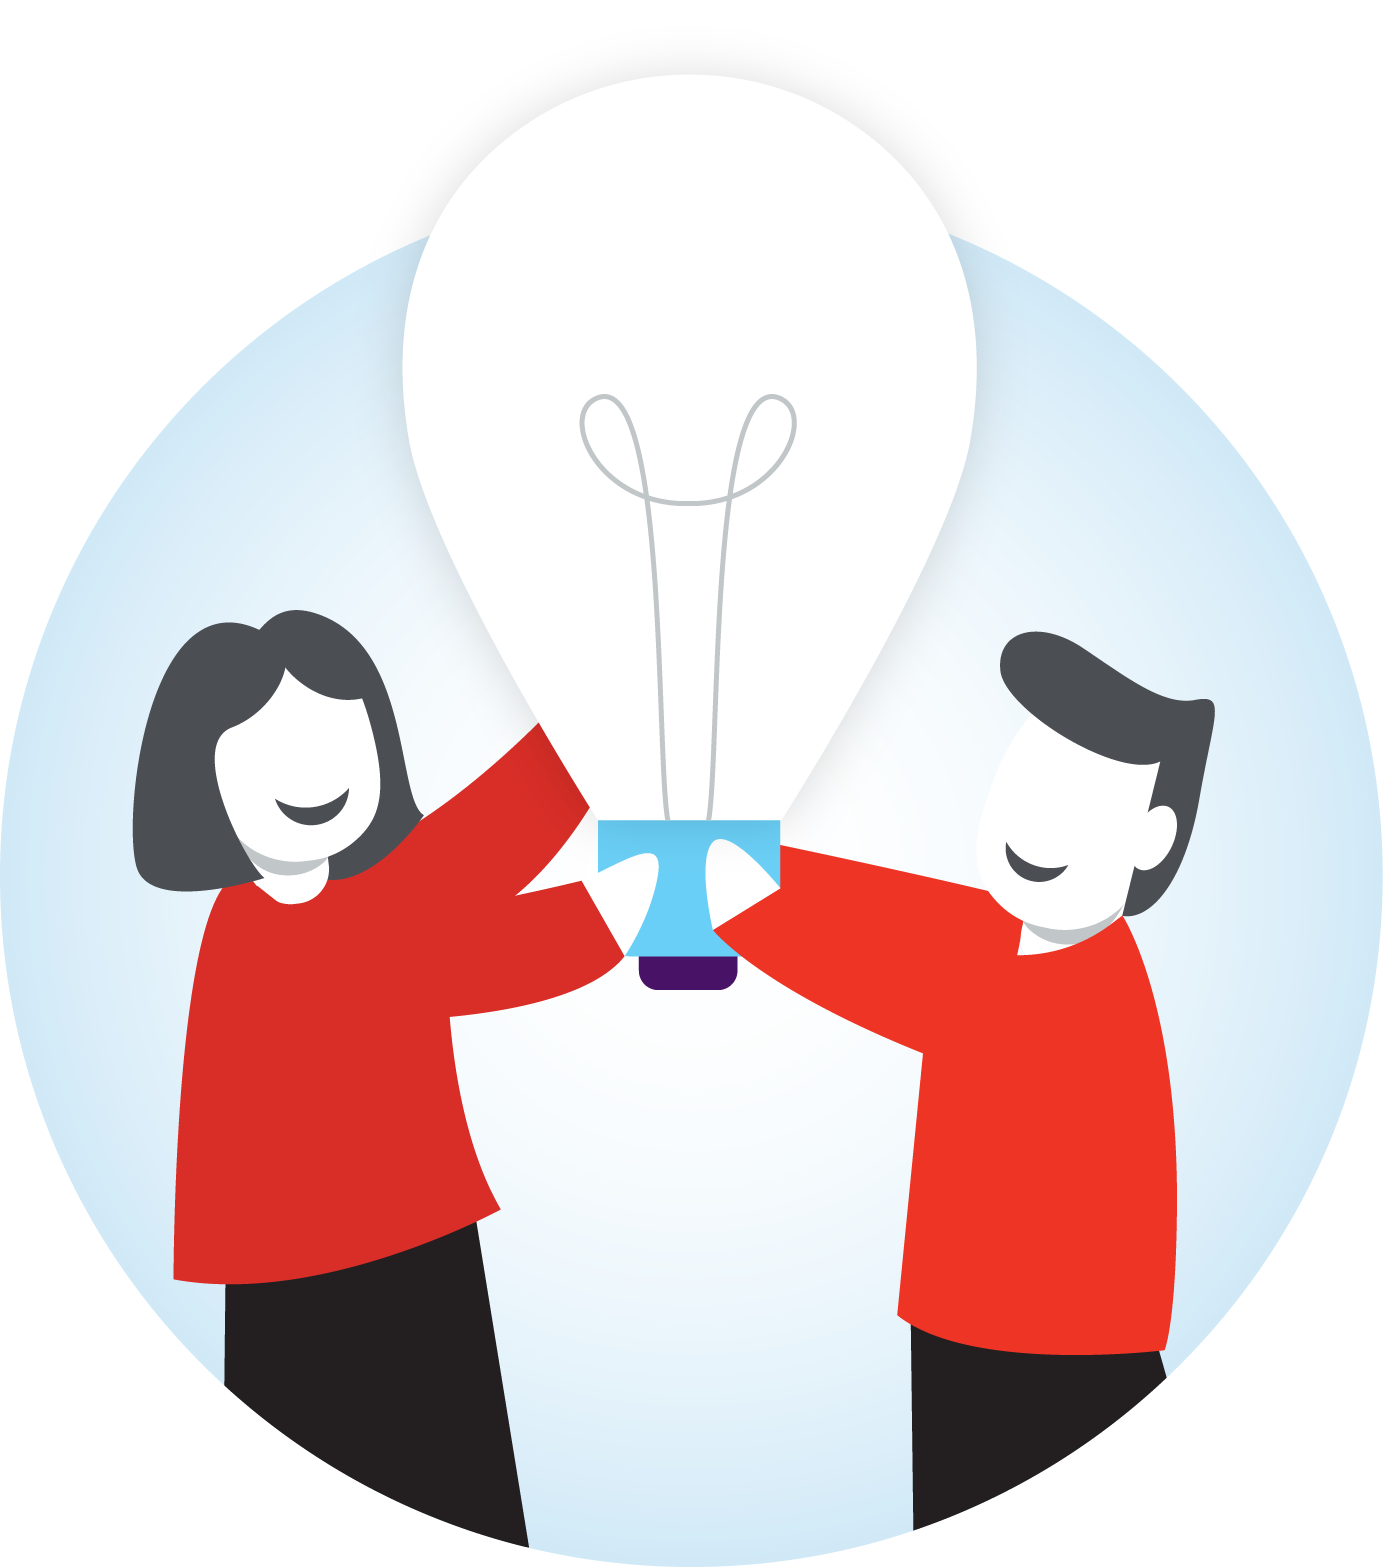 two people holding a giant lightbulb in the air together